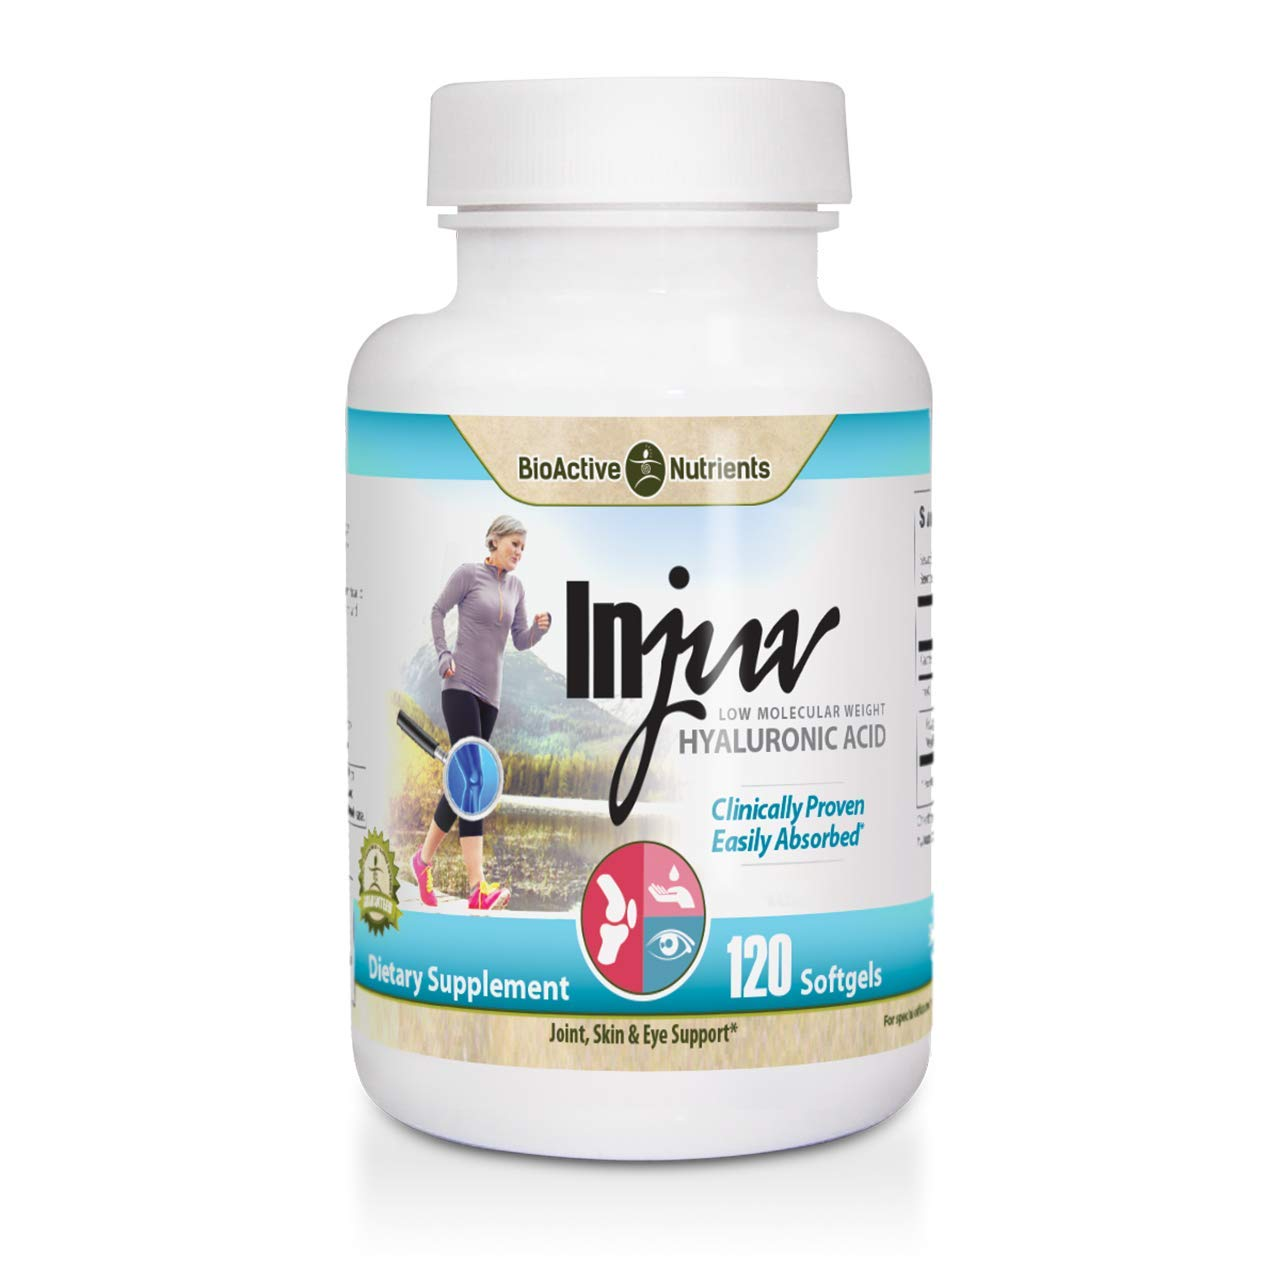 BioActive Nutrients Injuv - Low Molecular Weight Hyaluronic Acid 120 Softgels